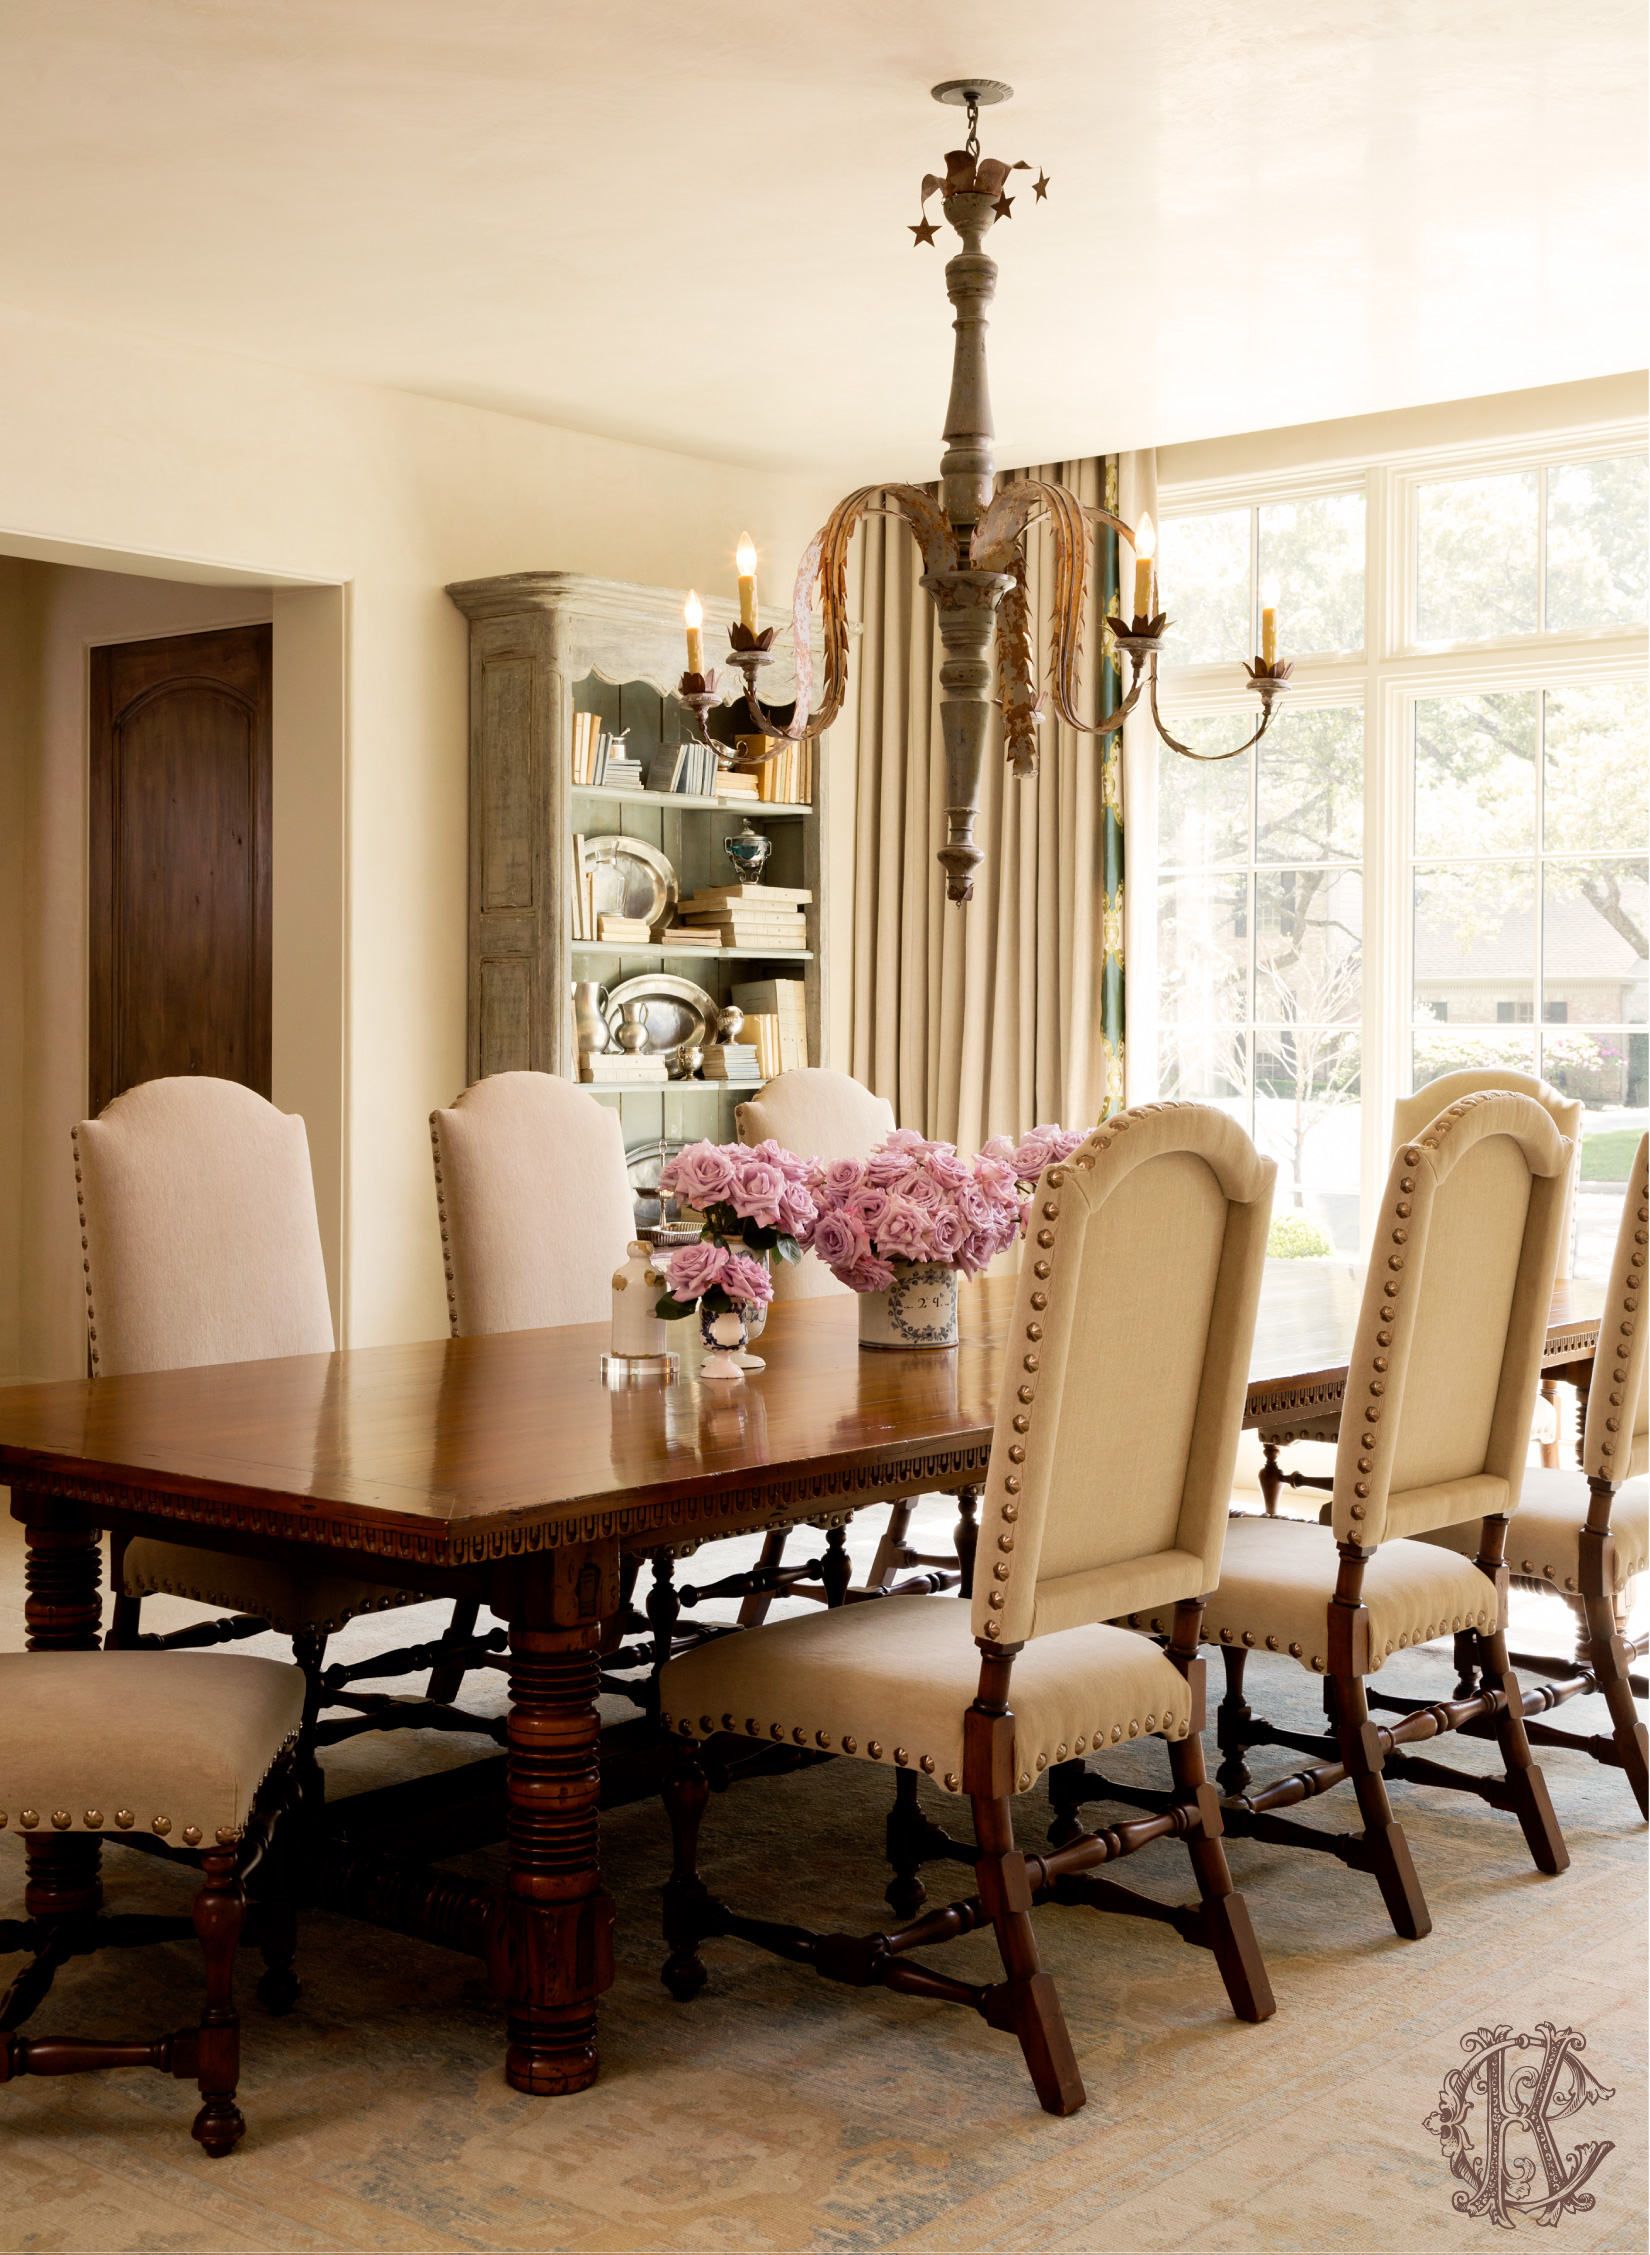 Kara Childress, Inc. designs timeless Houston home